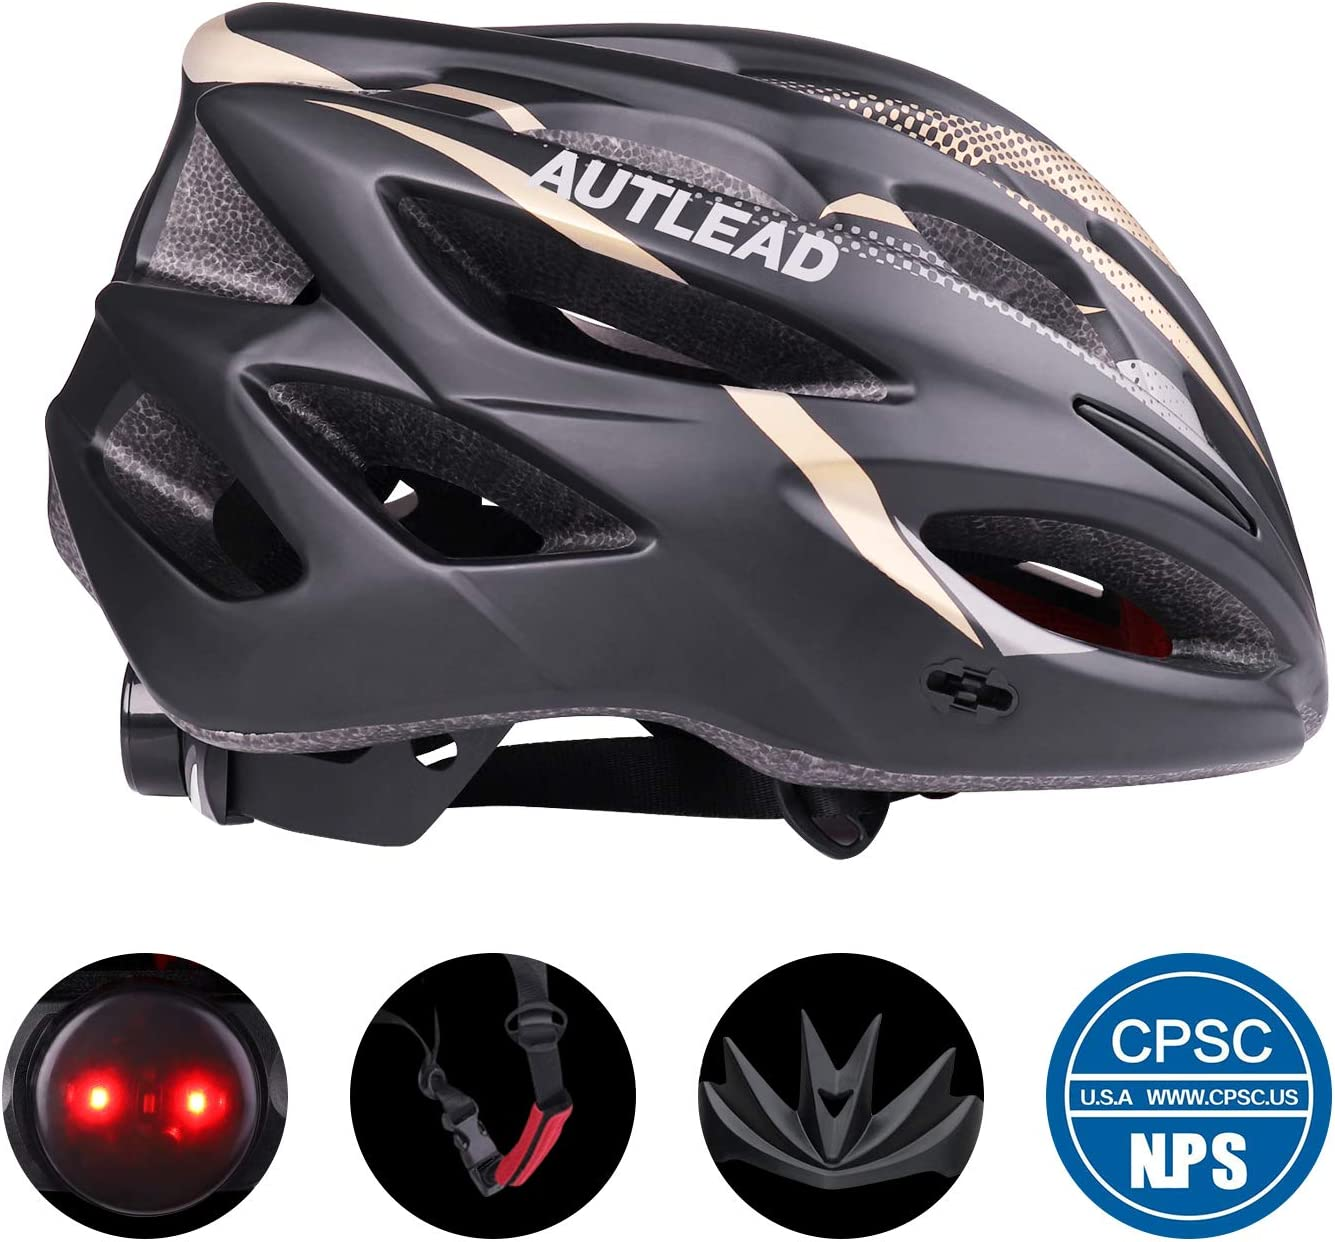 AUTLEAD Bike Helmet, Cycling Helmet with Removable Visor Flow Vents Adjustable Dial and Detachable Liner CPSC Safety Certified for Men Women 22-24inches